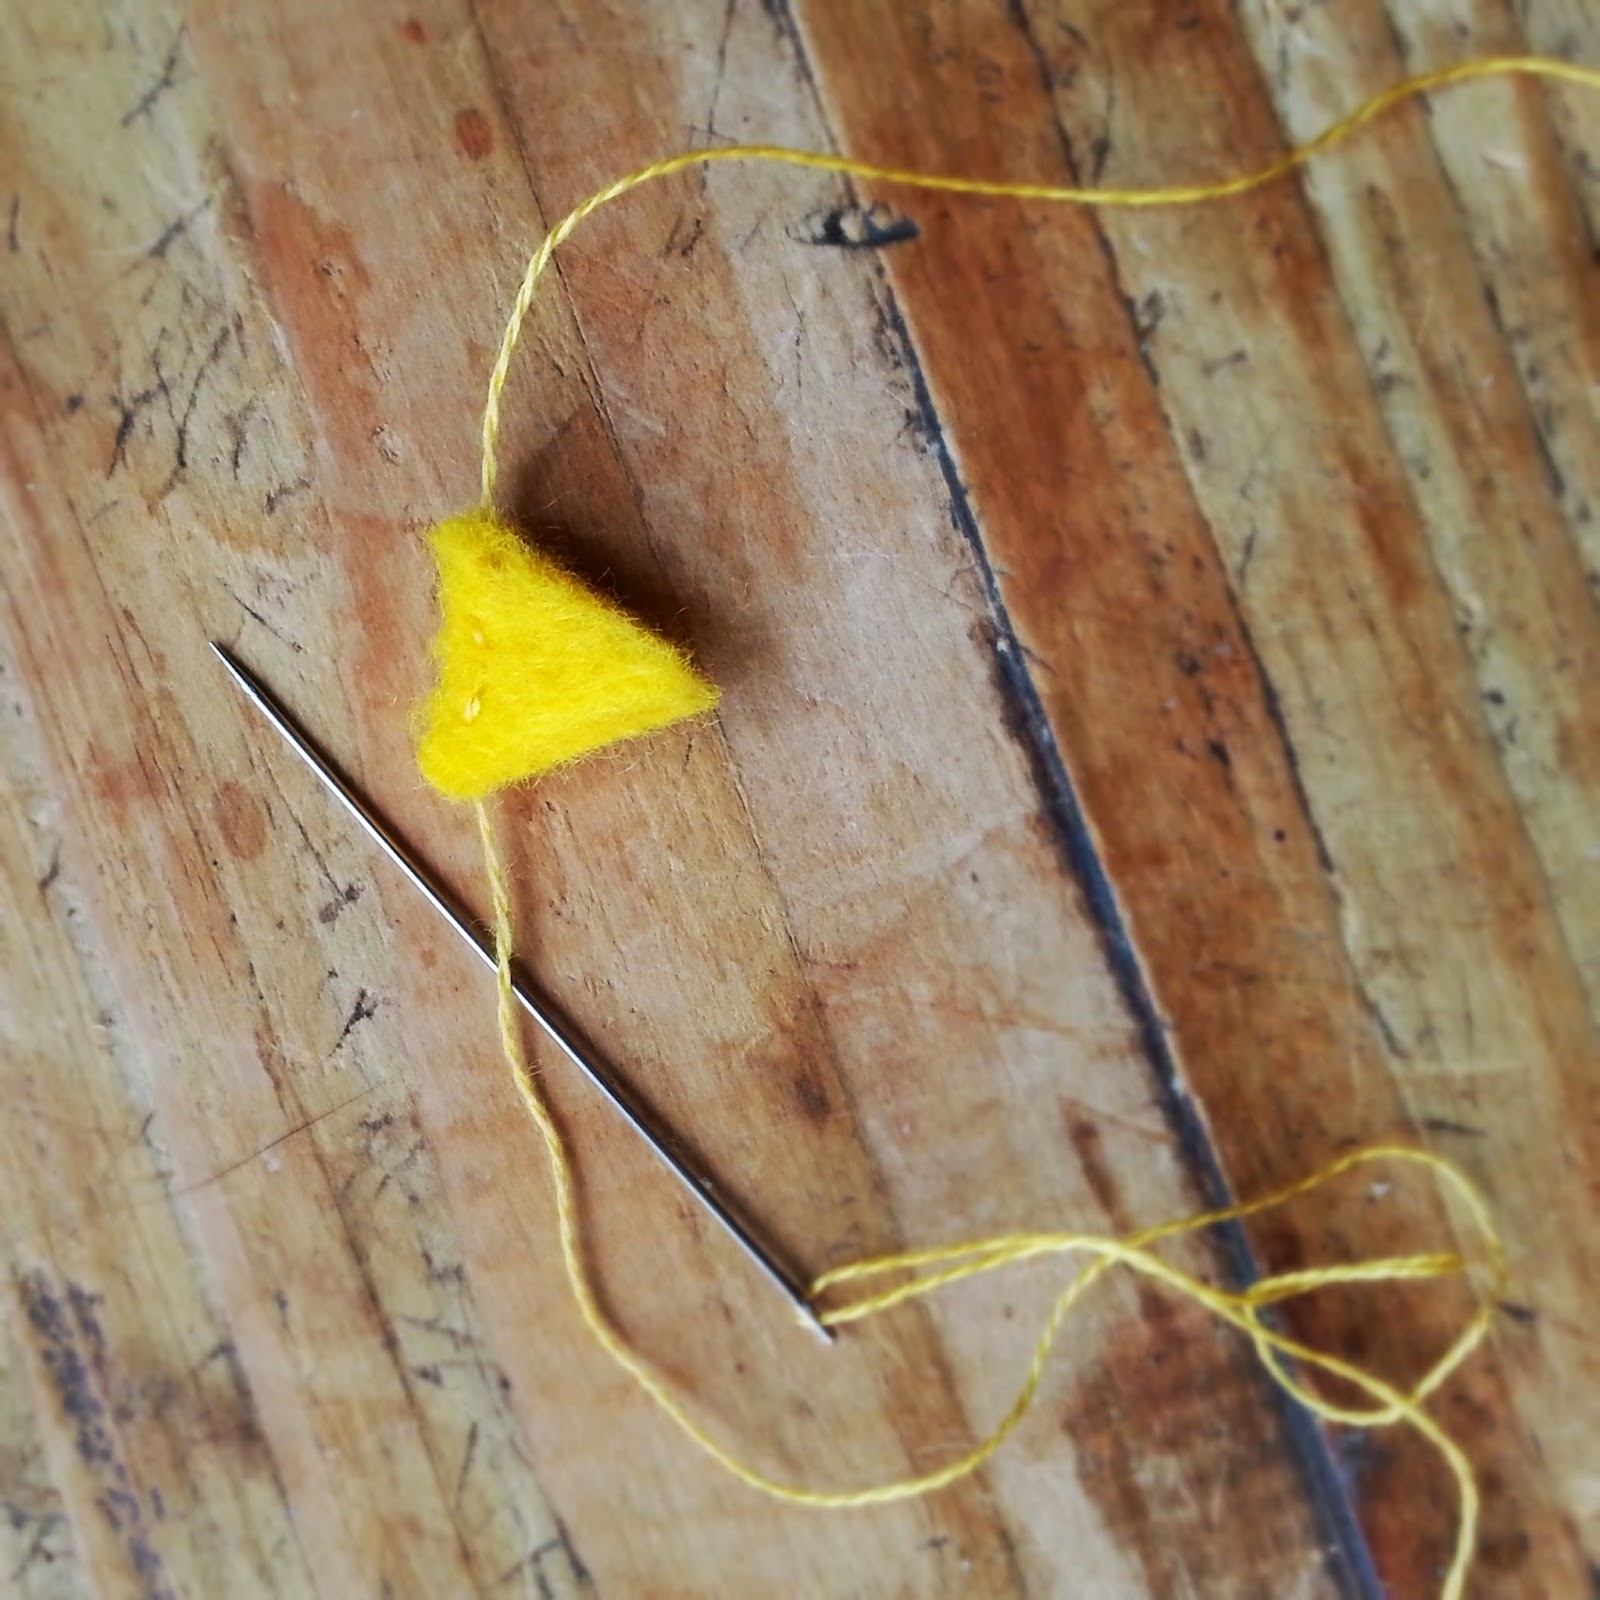 how to join knitting in the round without twisting